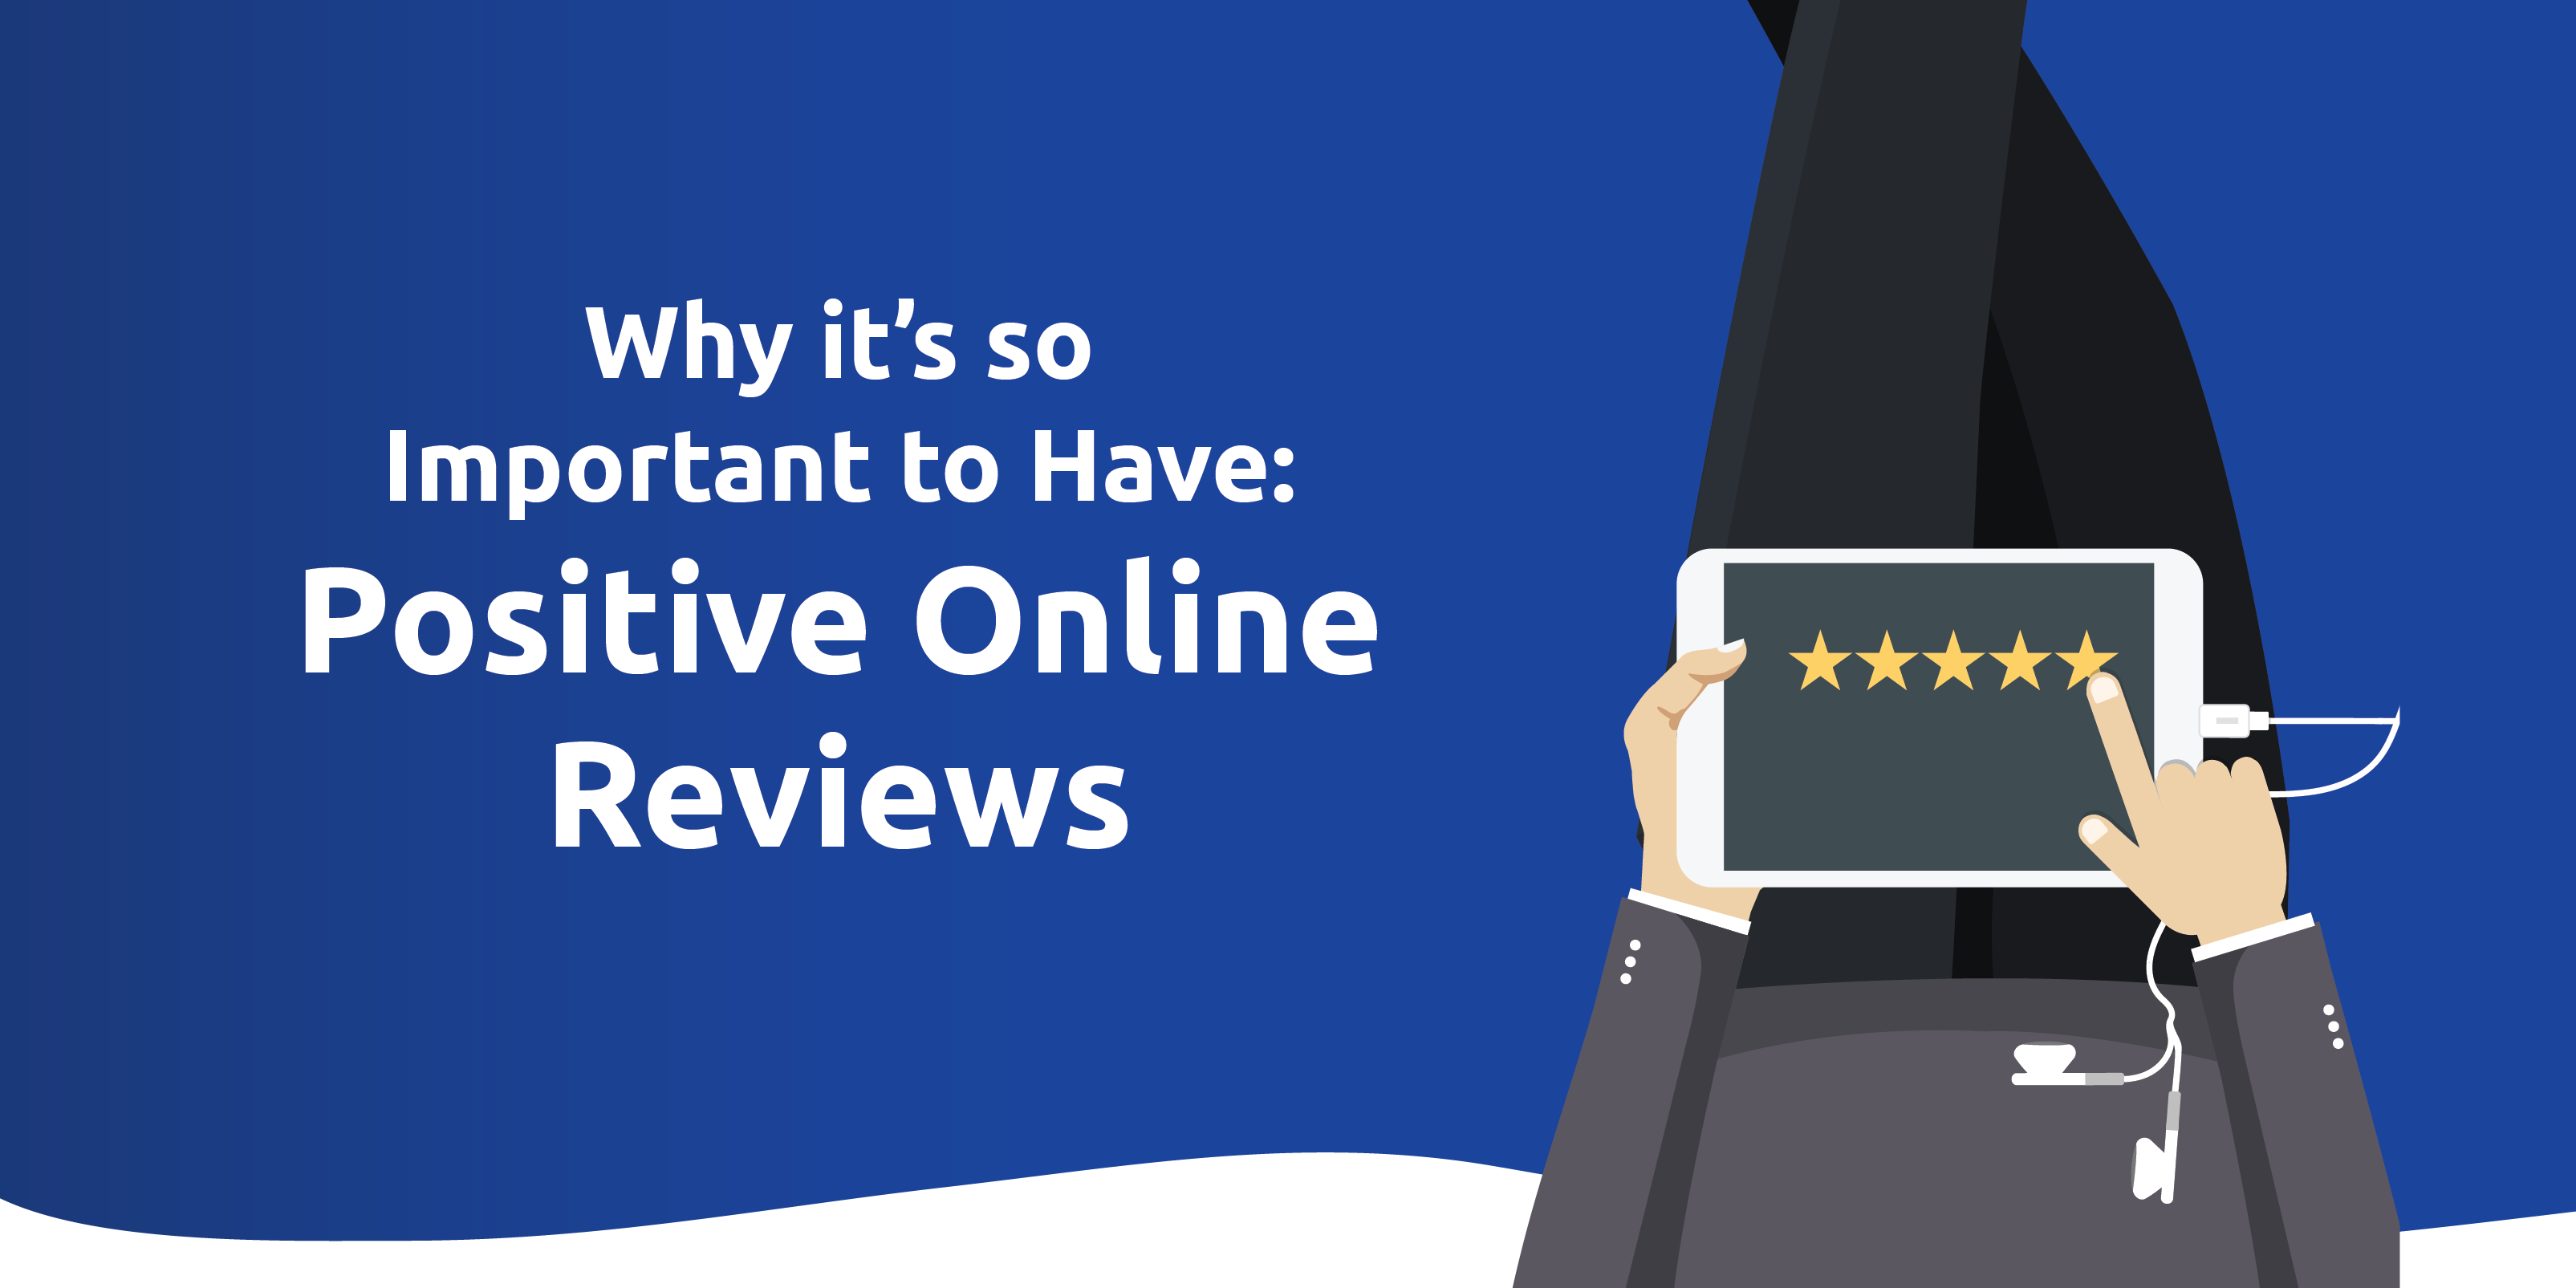 Why It's So Important to Have Positive Online Reviews